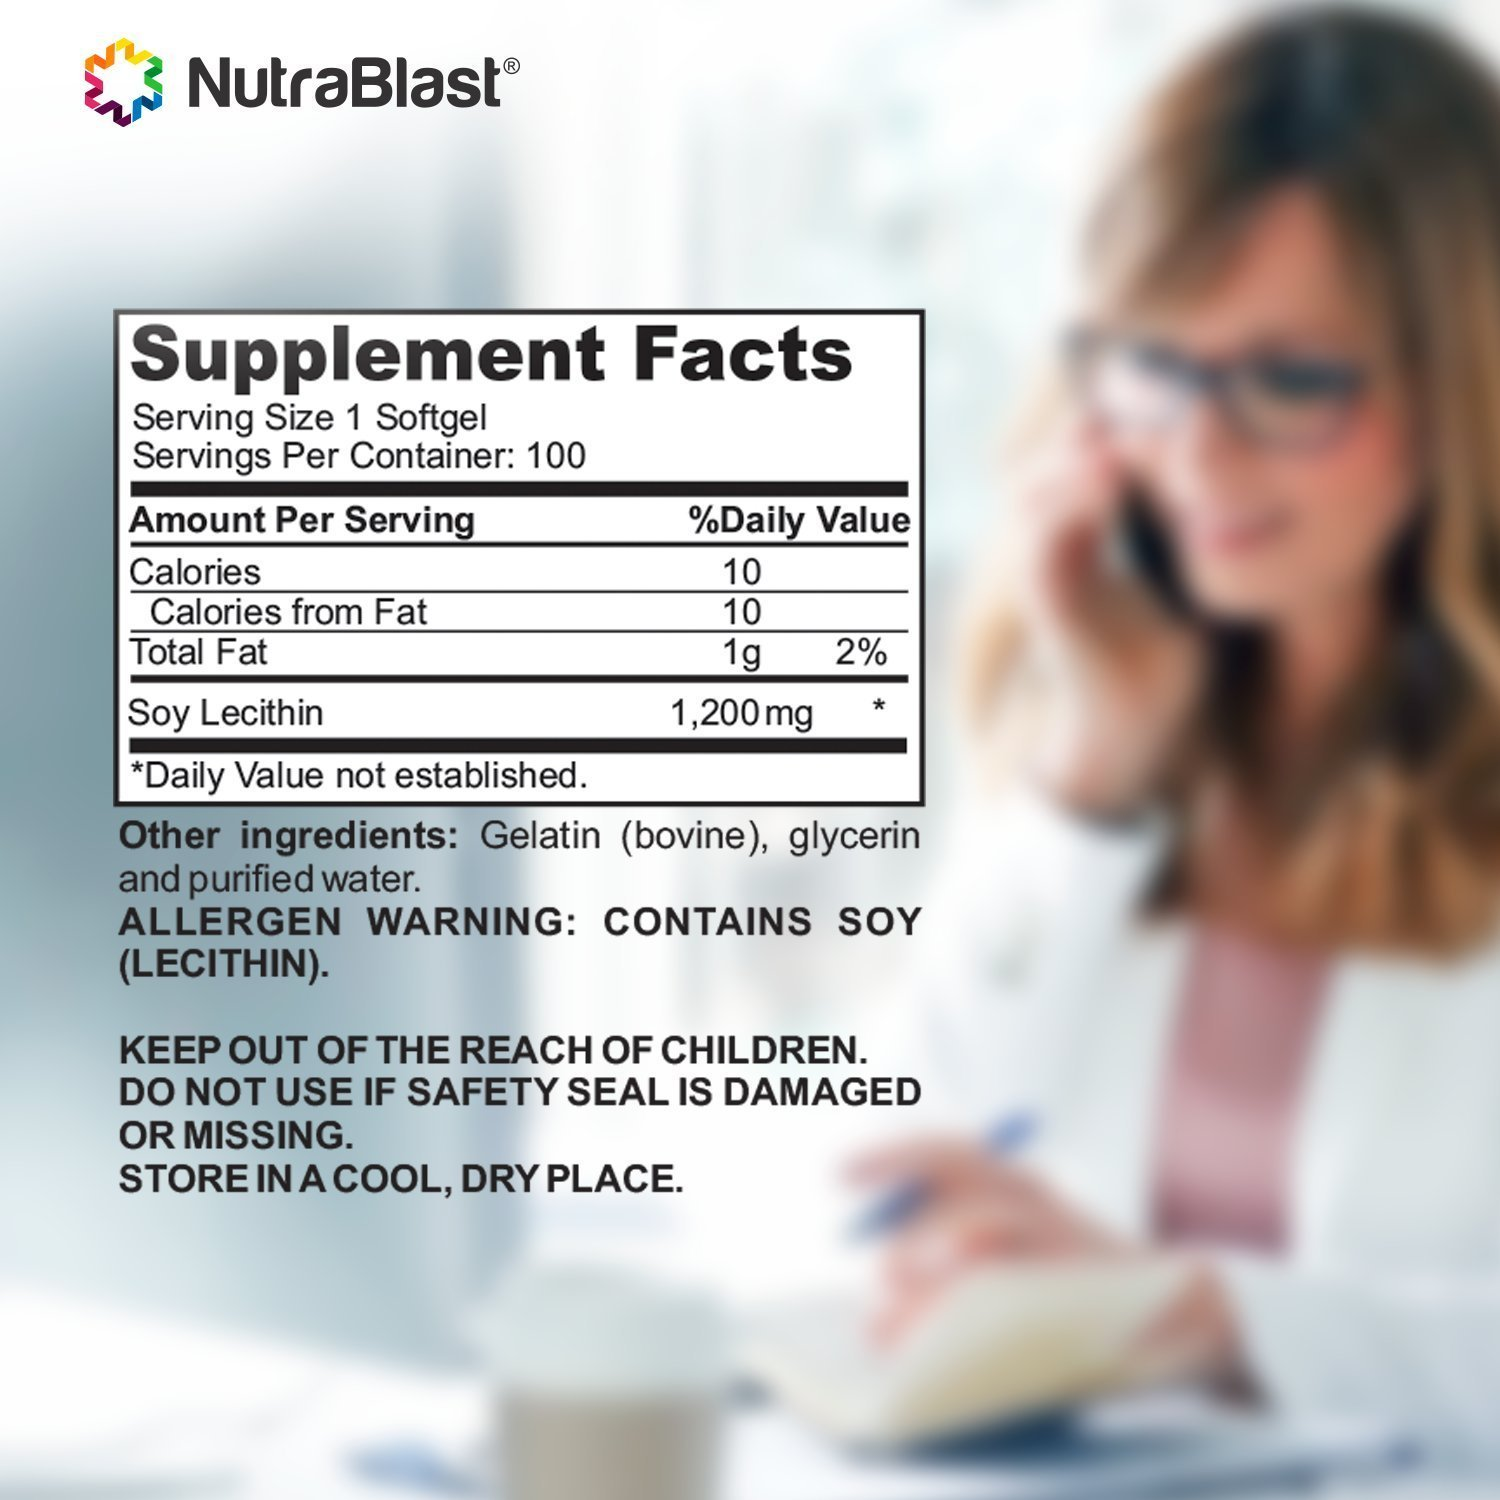 NUTRABLAST SOY LECITHIN 1200MG SUPPLEMENT